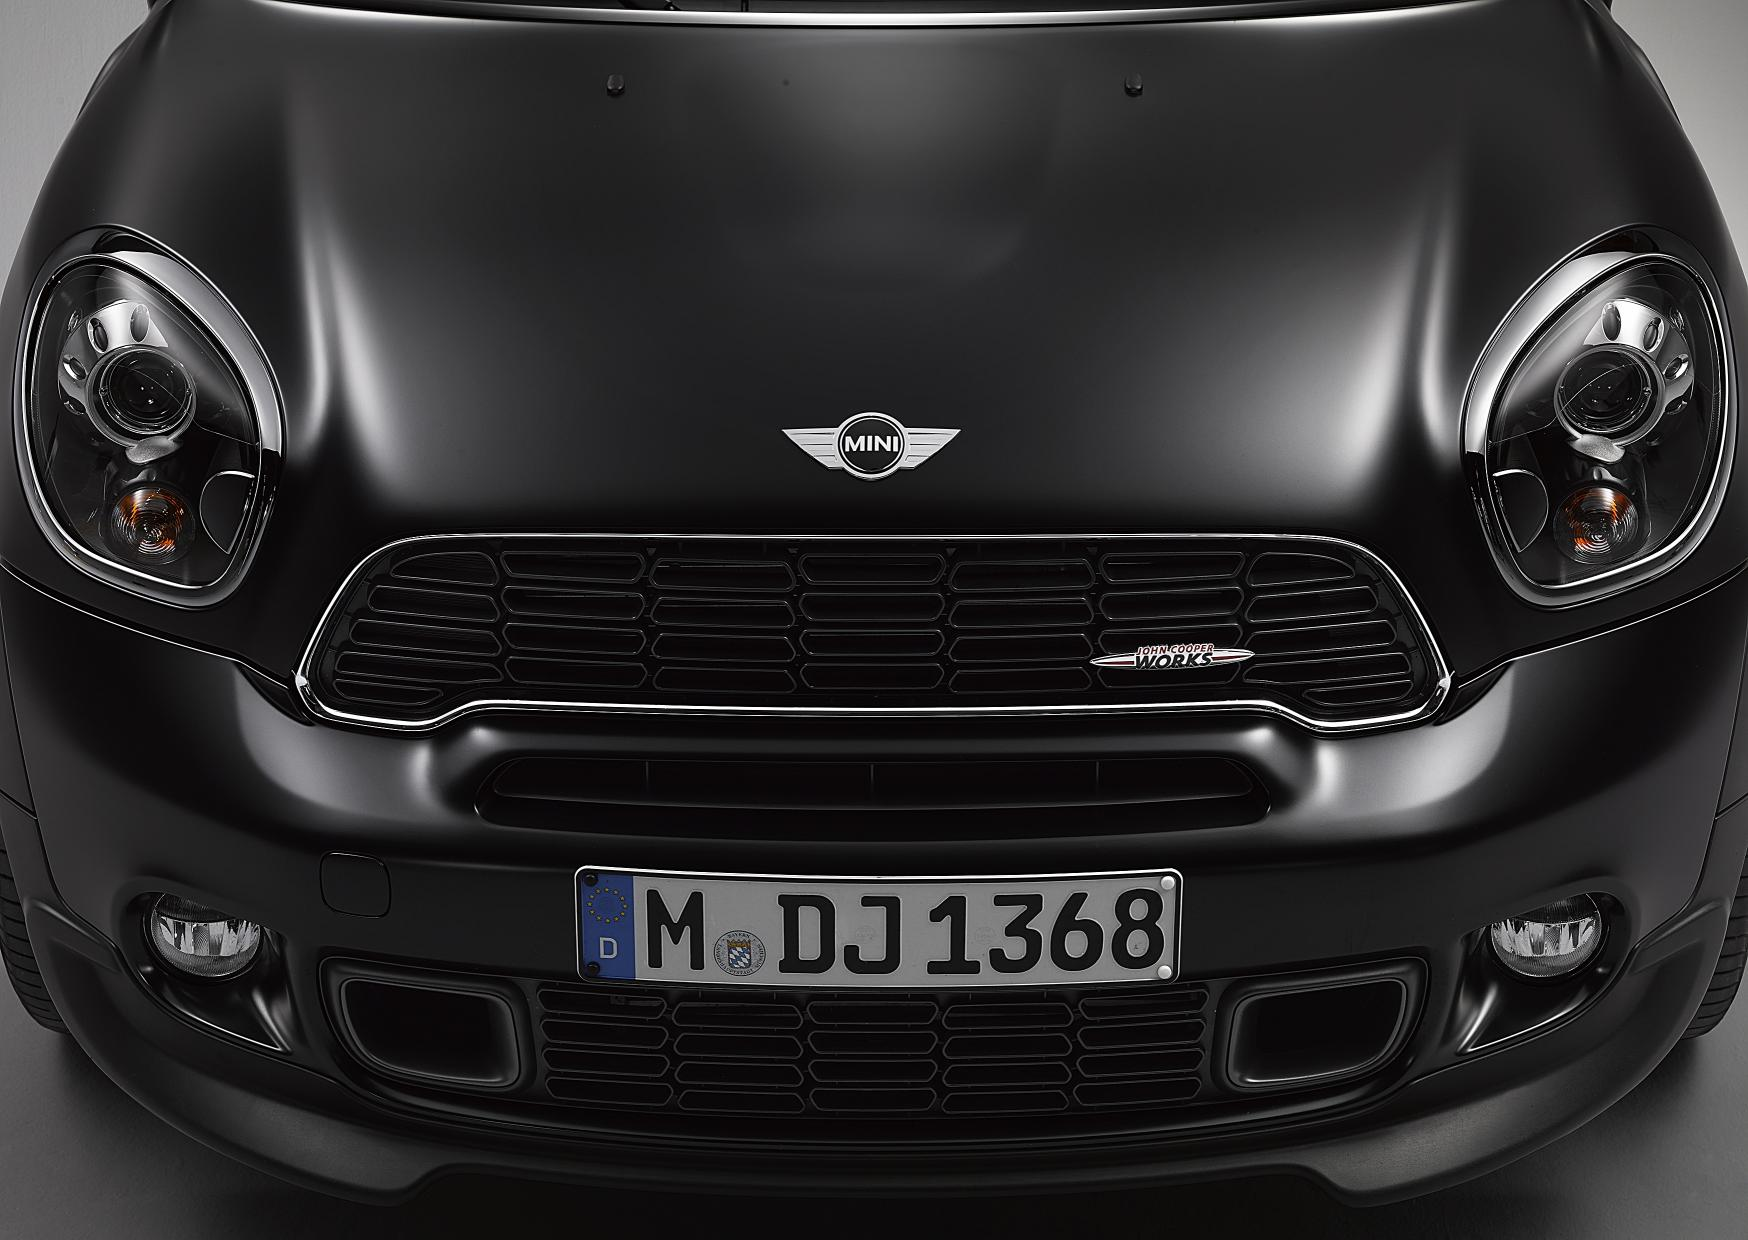 MINI NOW WITH EXCLUSIVE FROZEN BLACK METALLIC PAINT FINISH